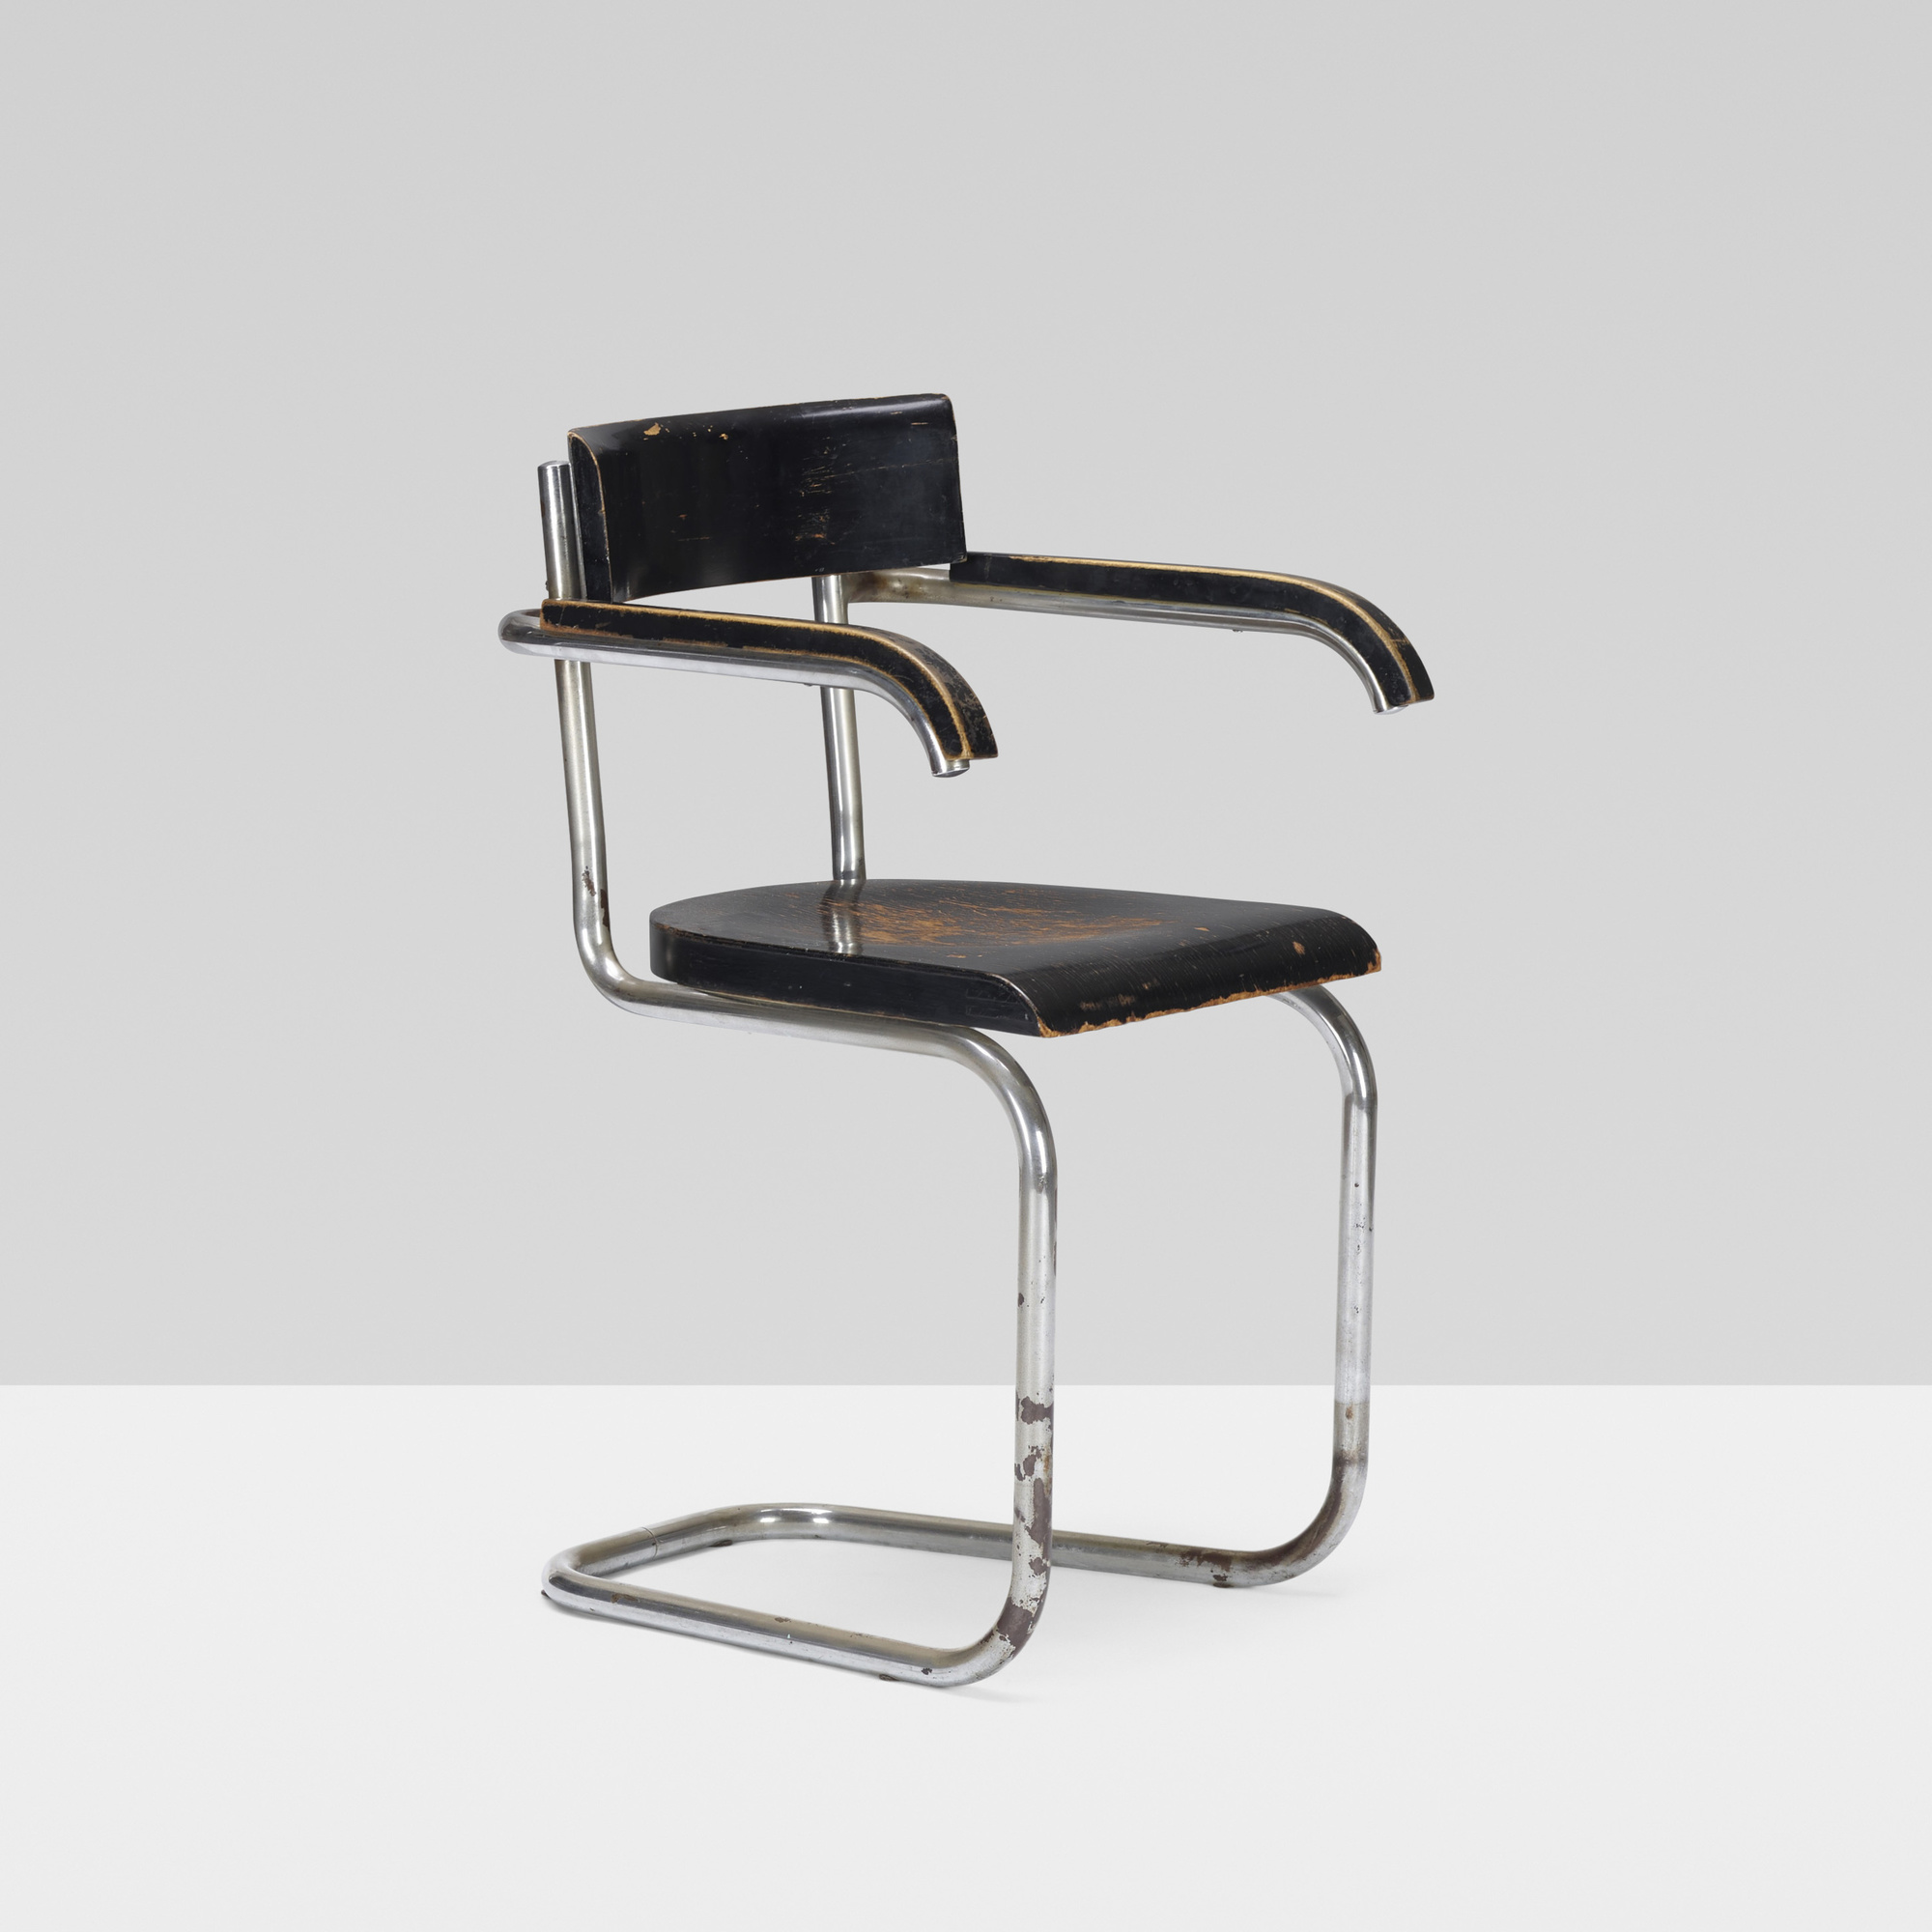 143: Mart Stam / armchair (2 of 2)